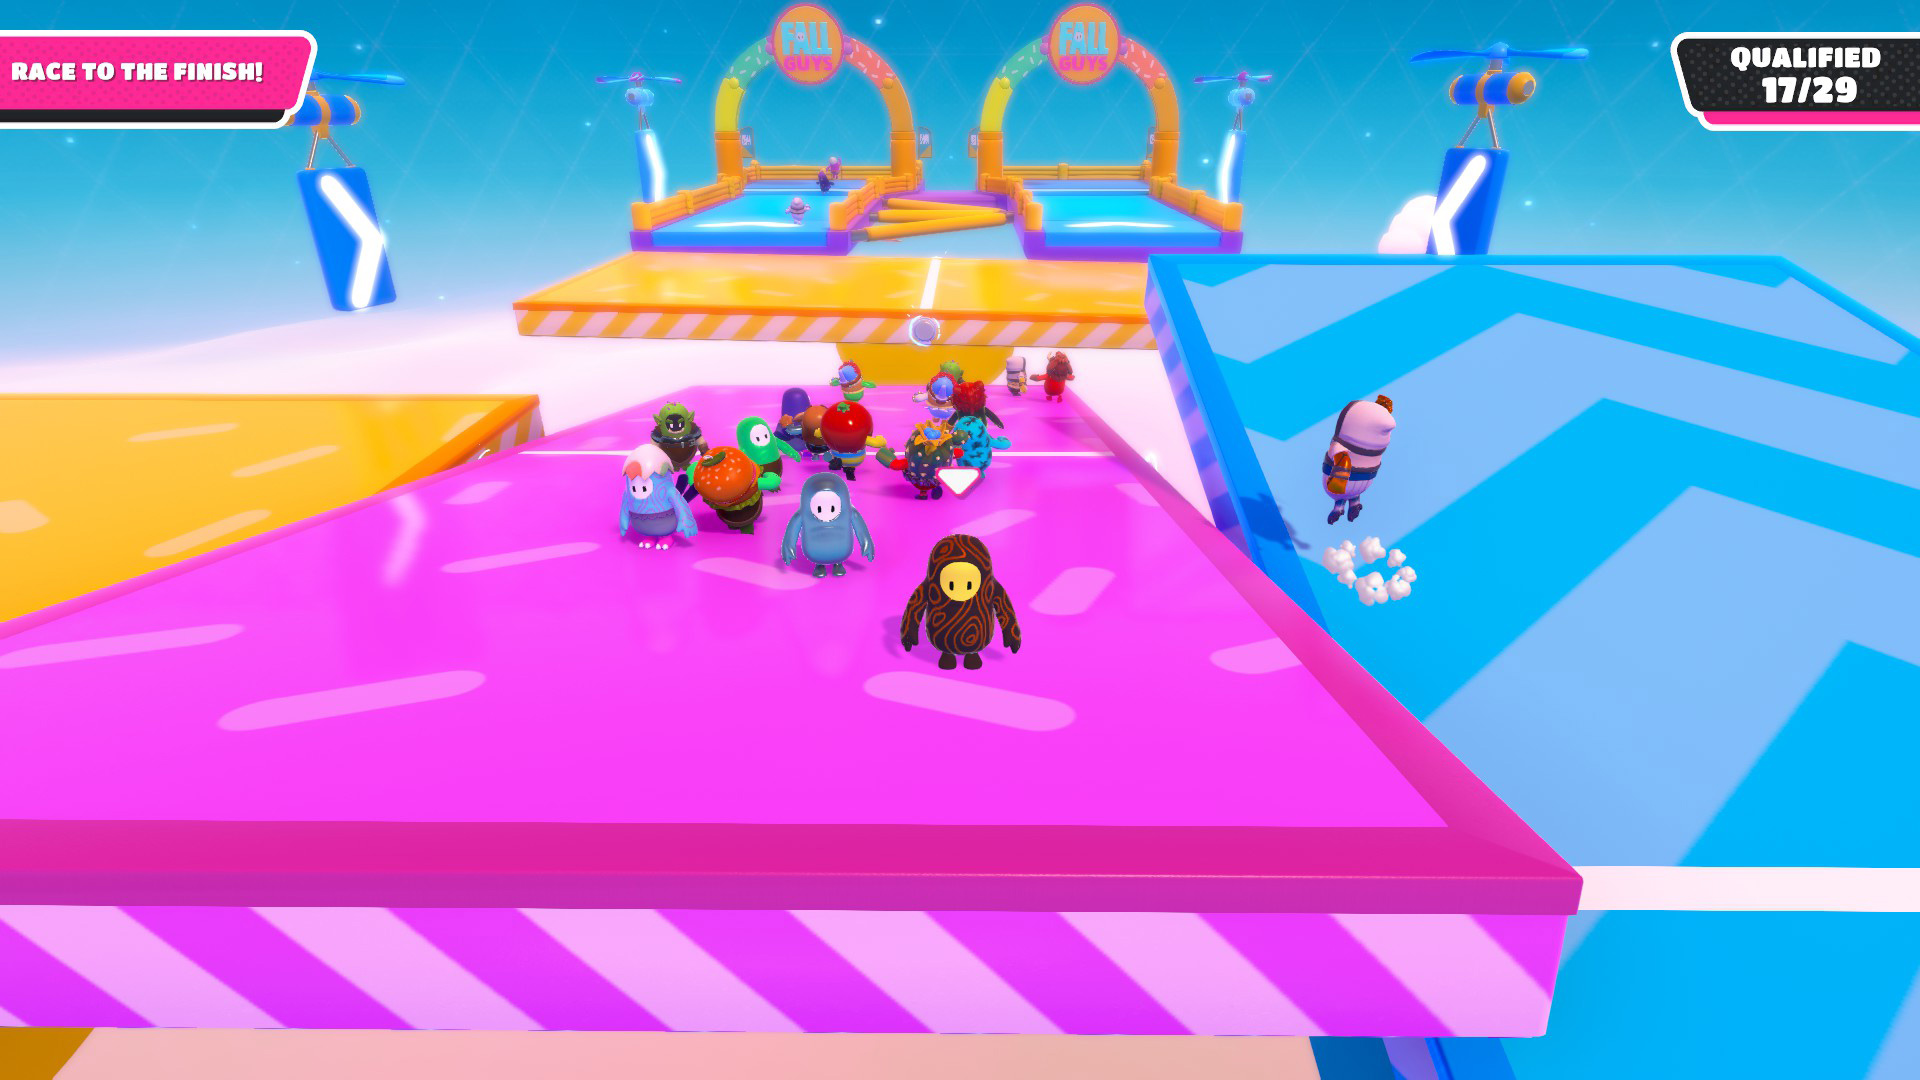 Fall Guys Season 2 added an evil new seesaw at the end of the level